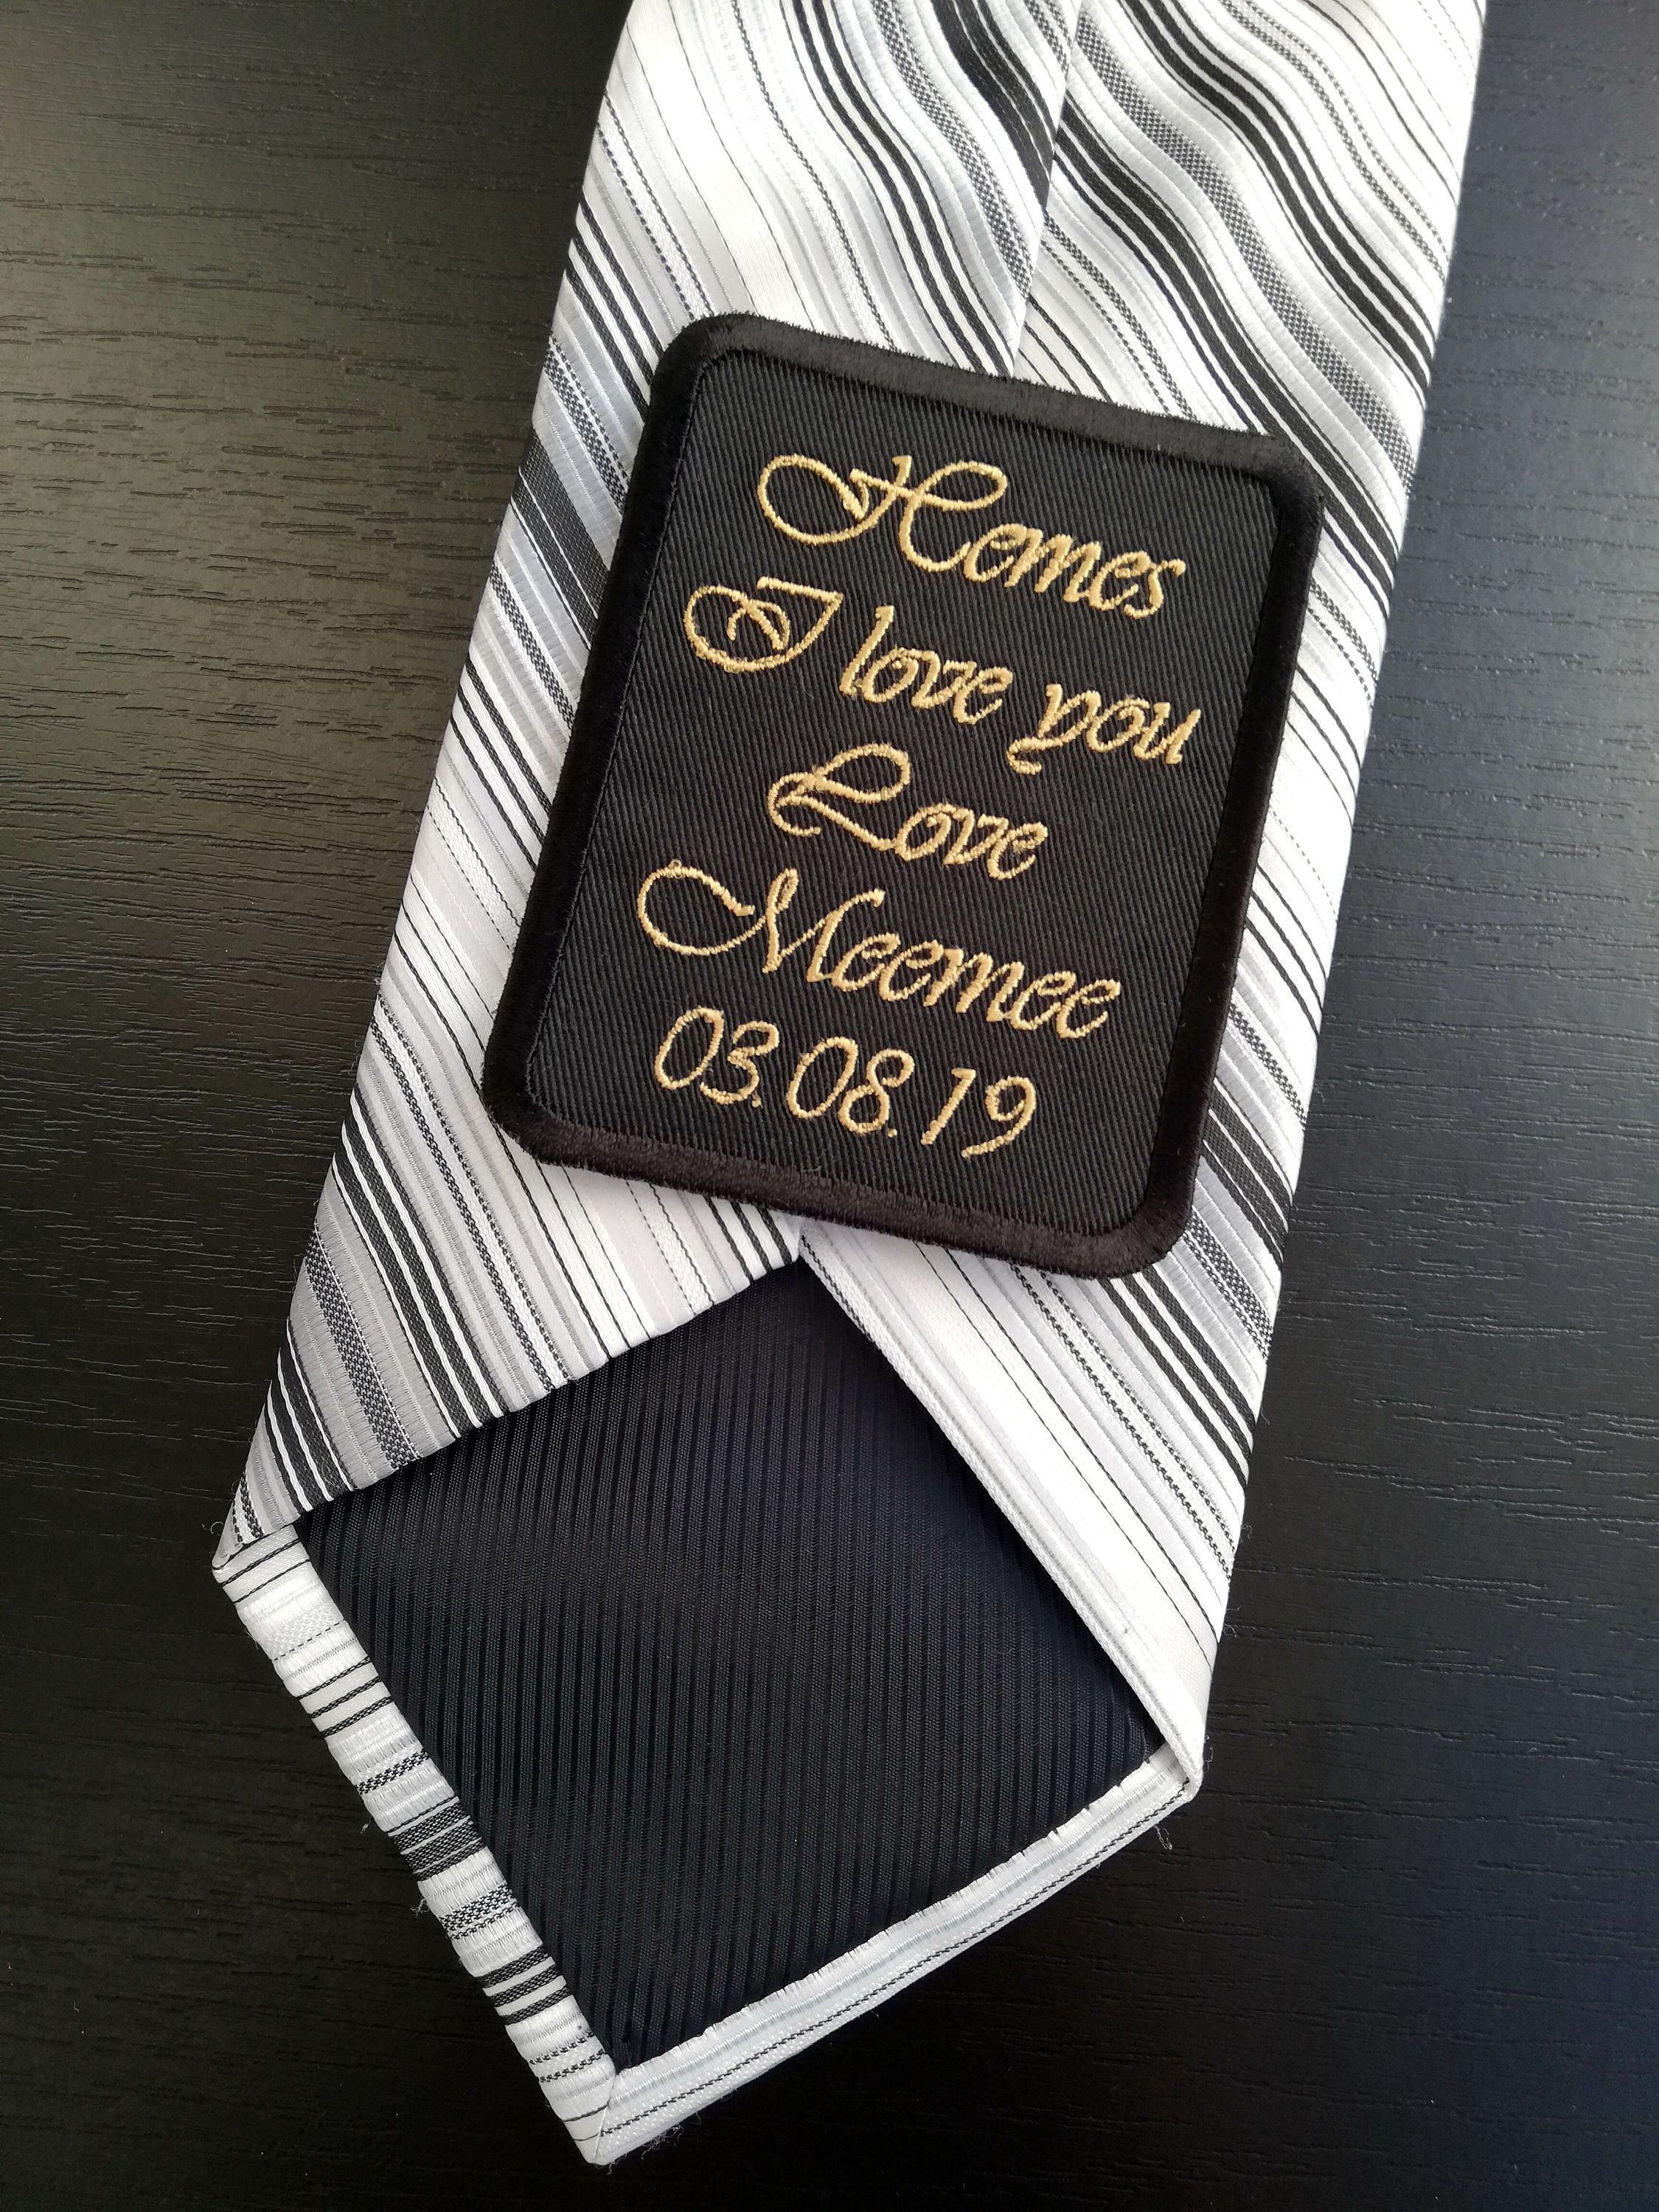 Groom gift from bride on wedding day wedding tie patch